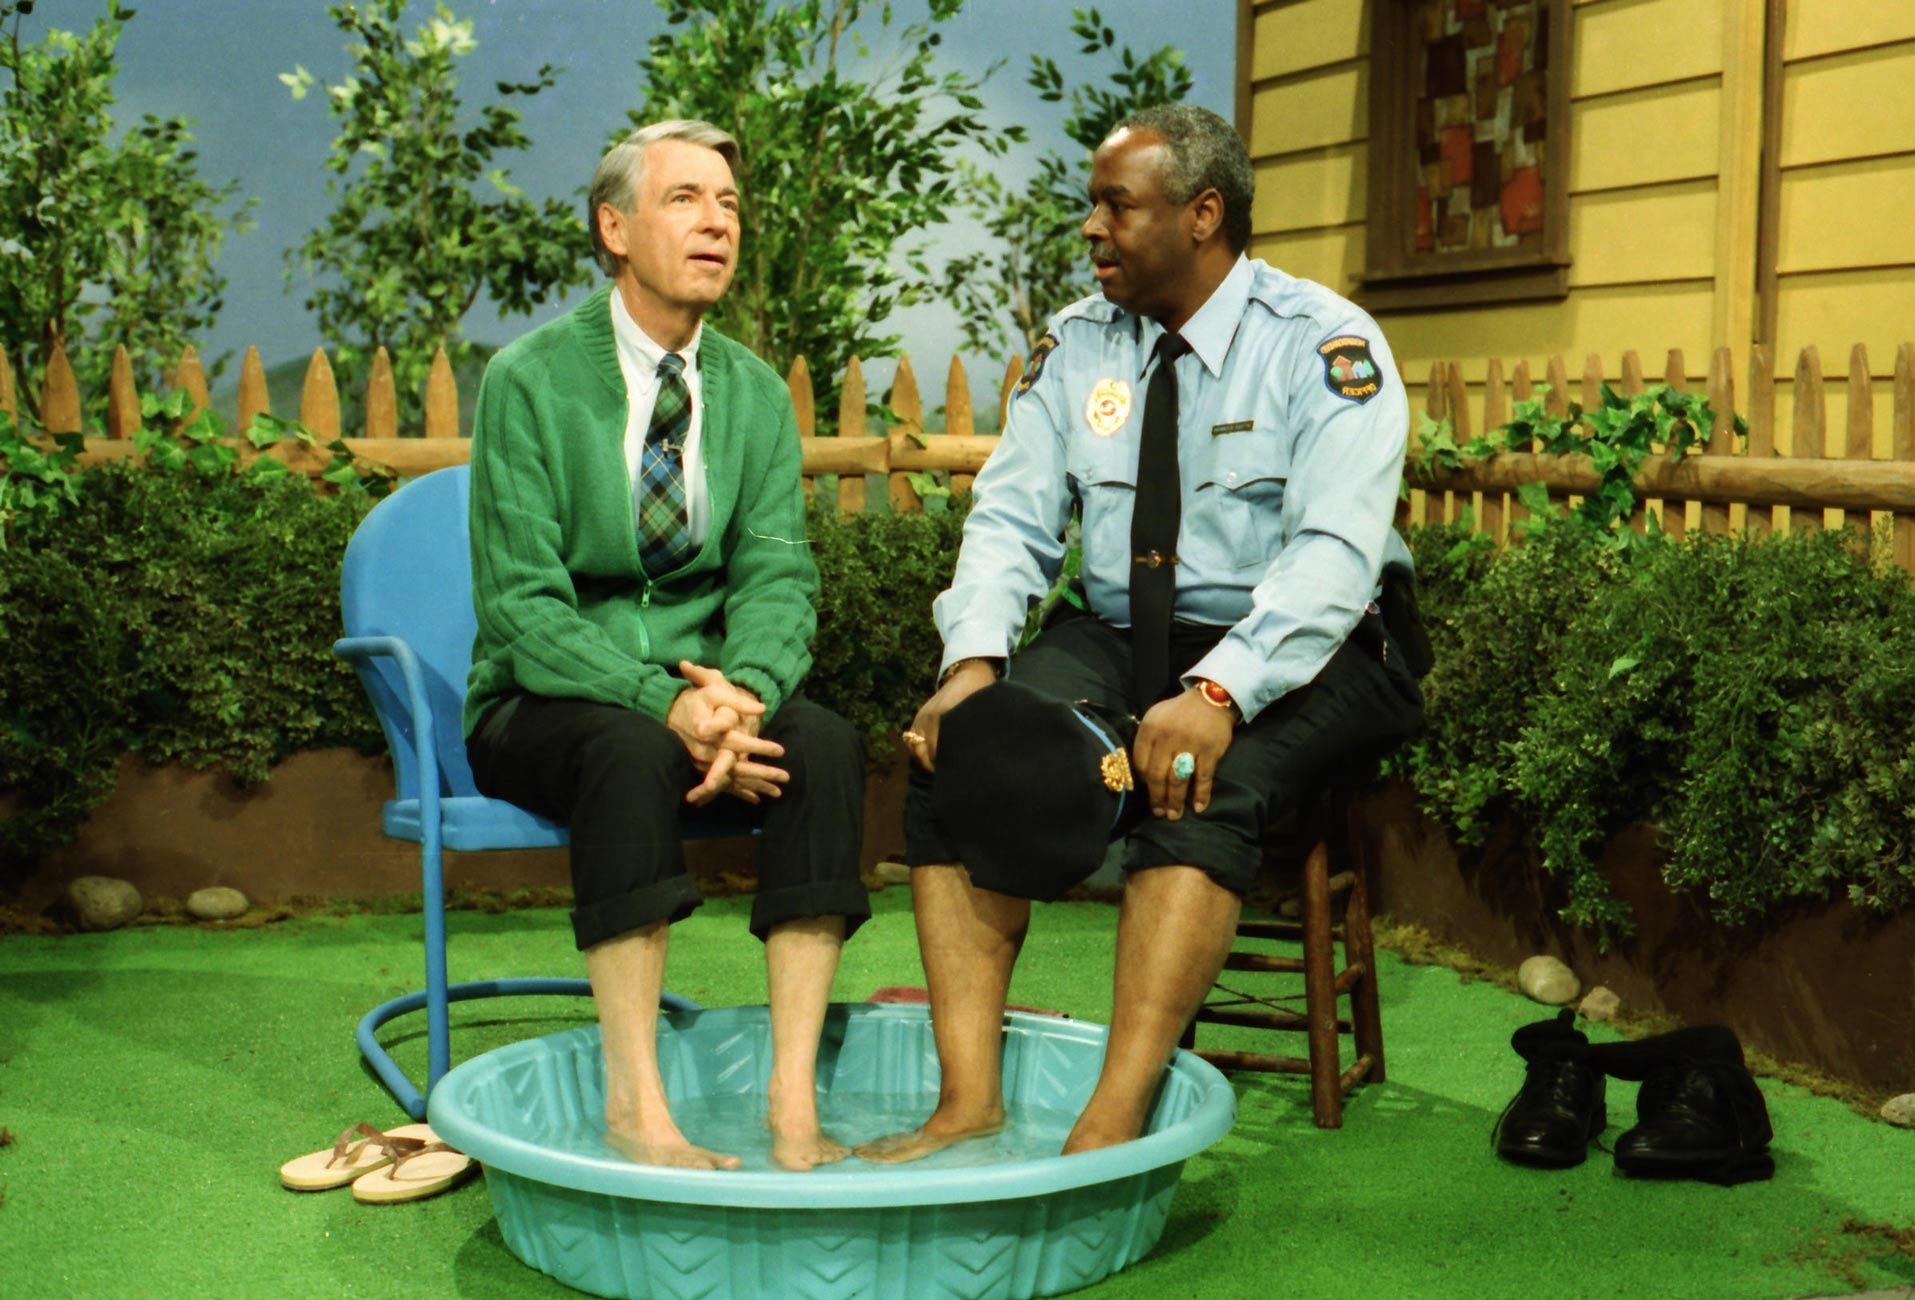 Mr Rogers and Officer Clemmons - Adsum